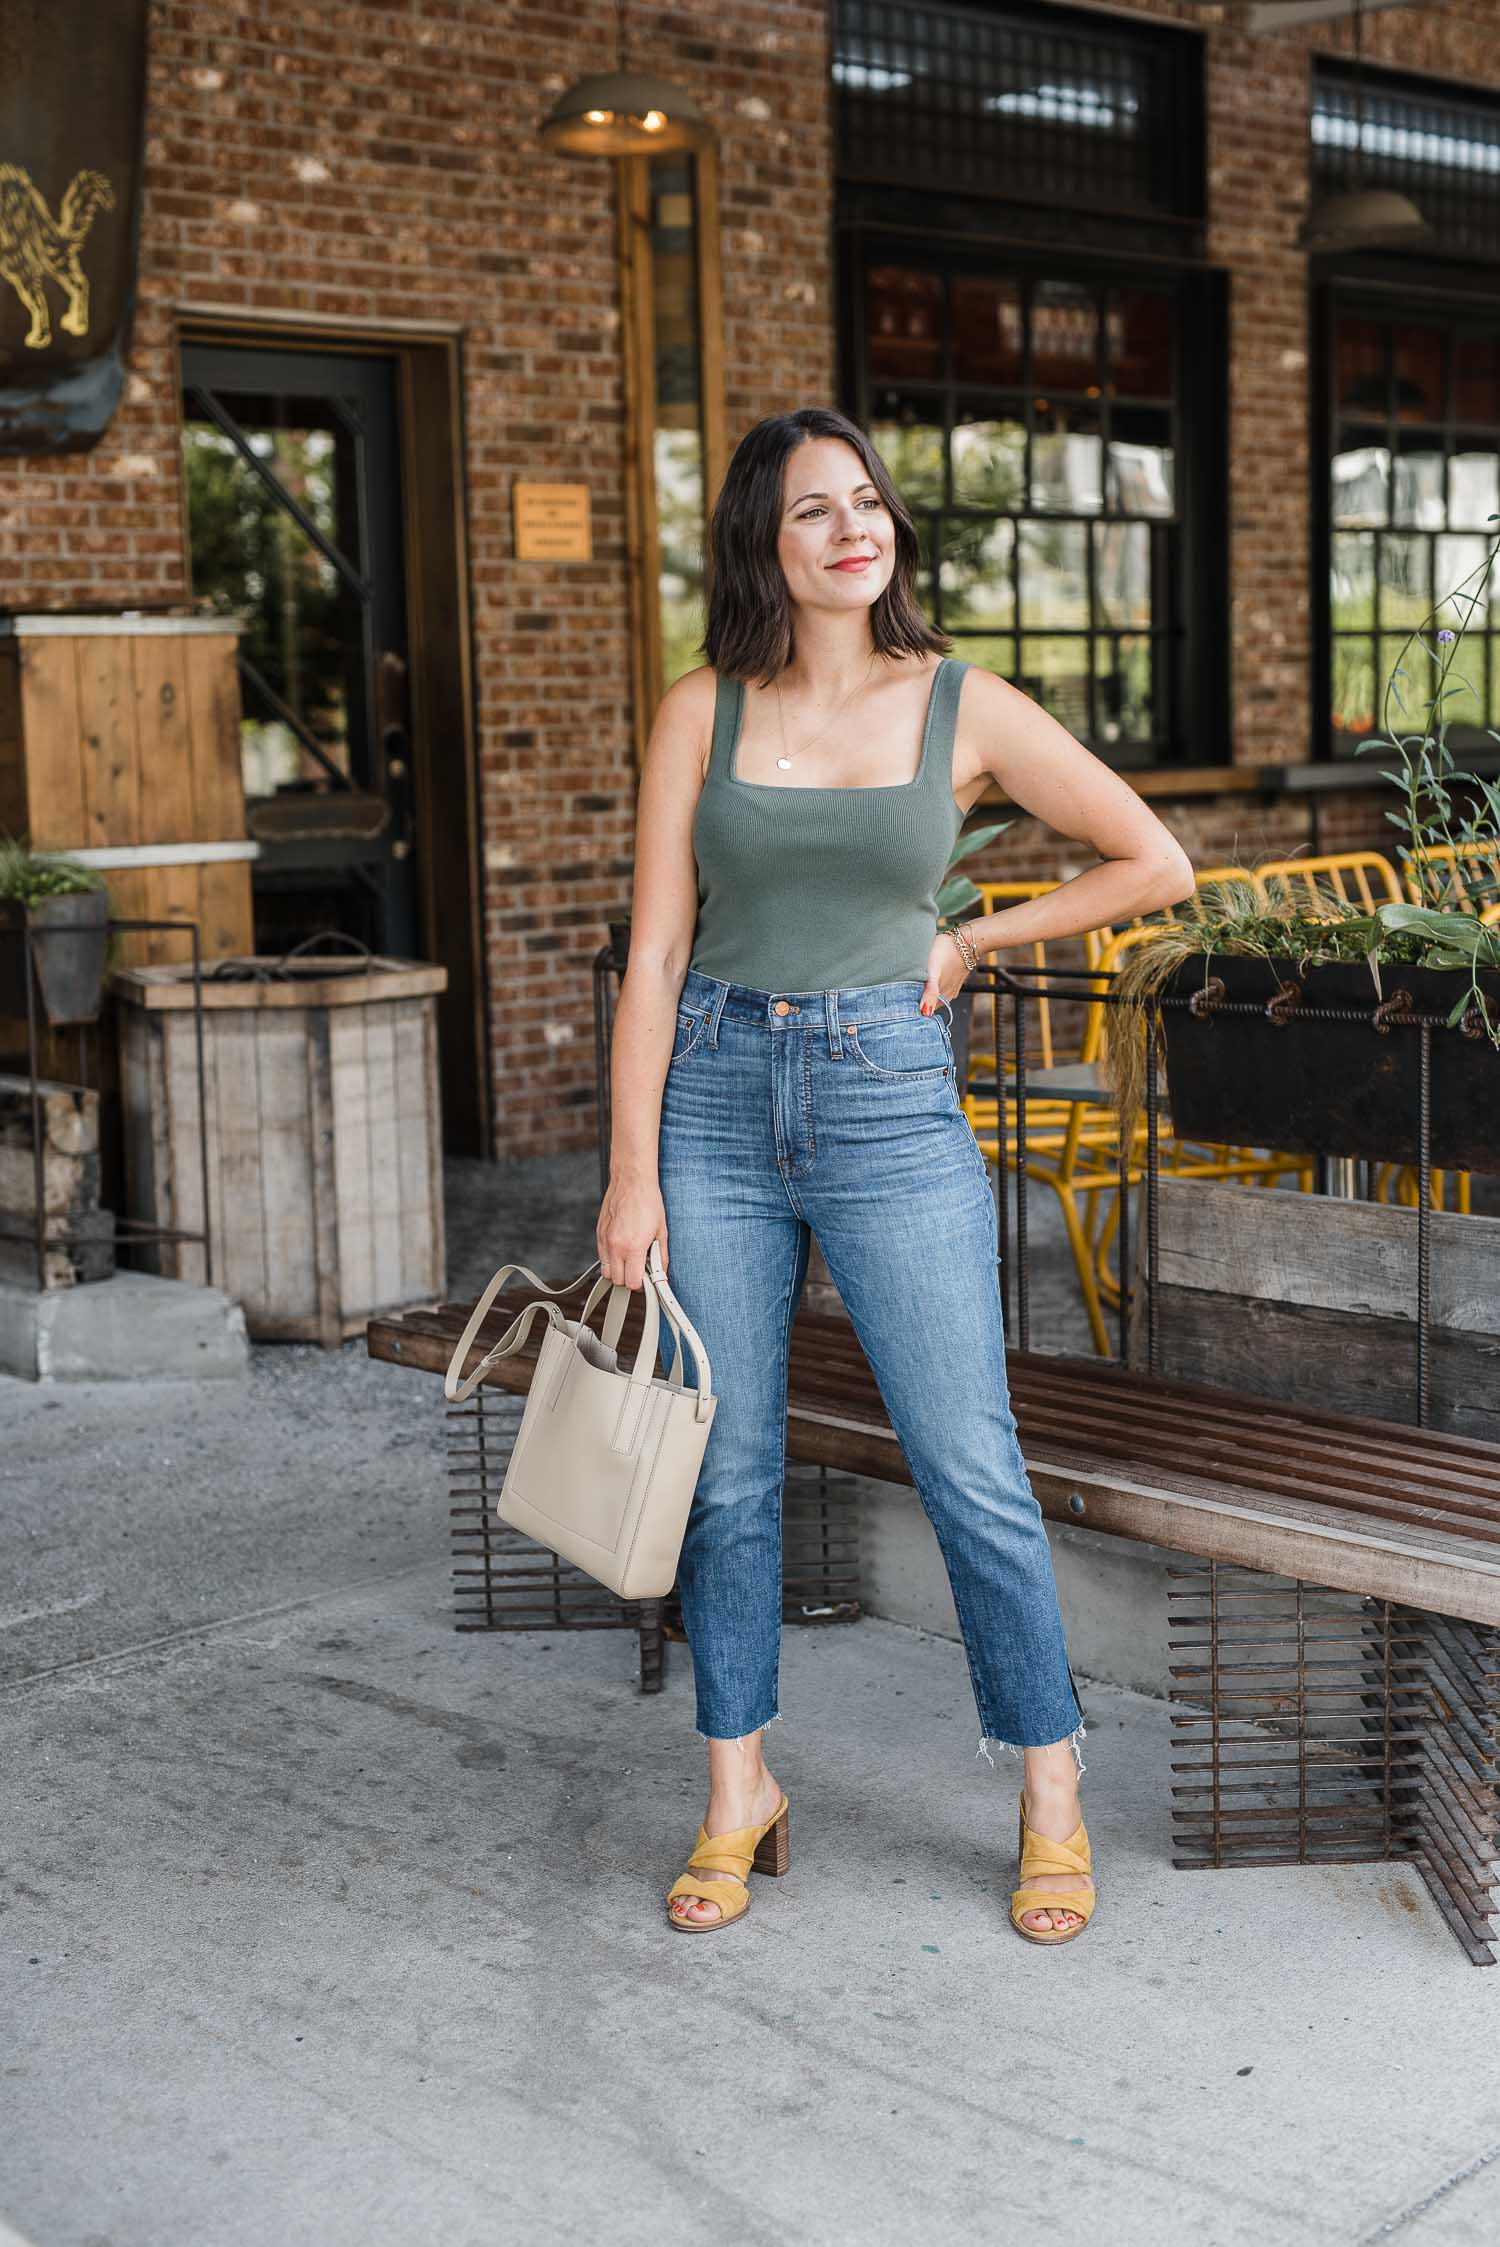 Green Leith Tank and jeans outfit